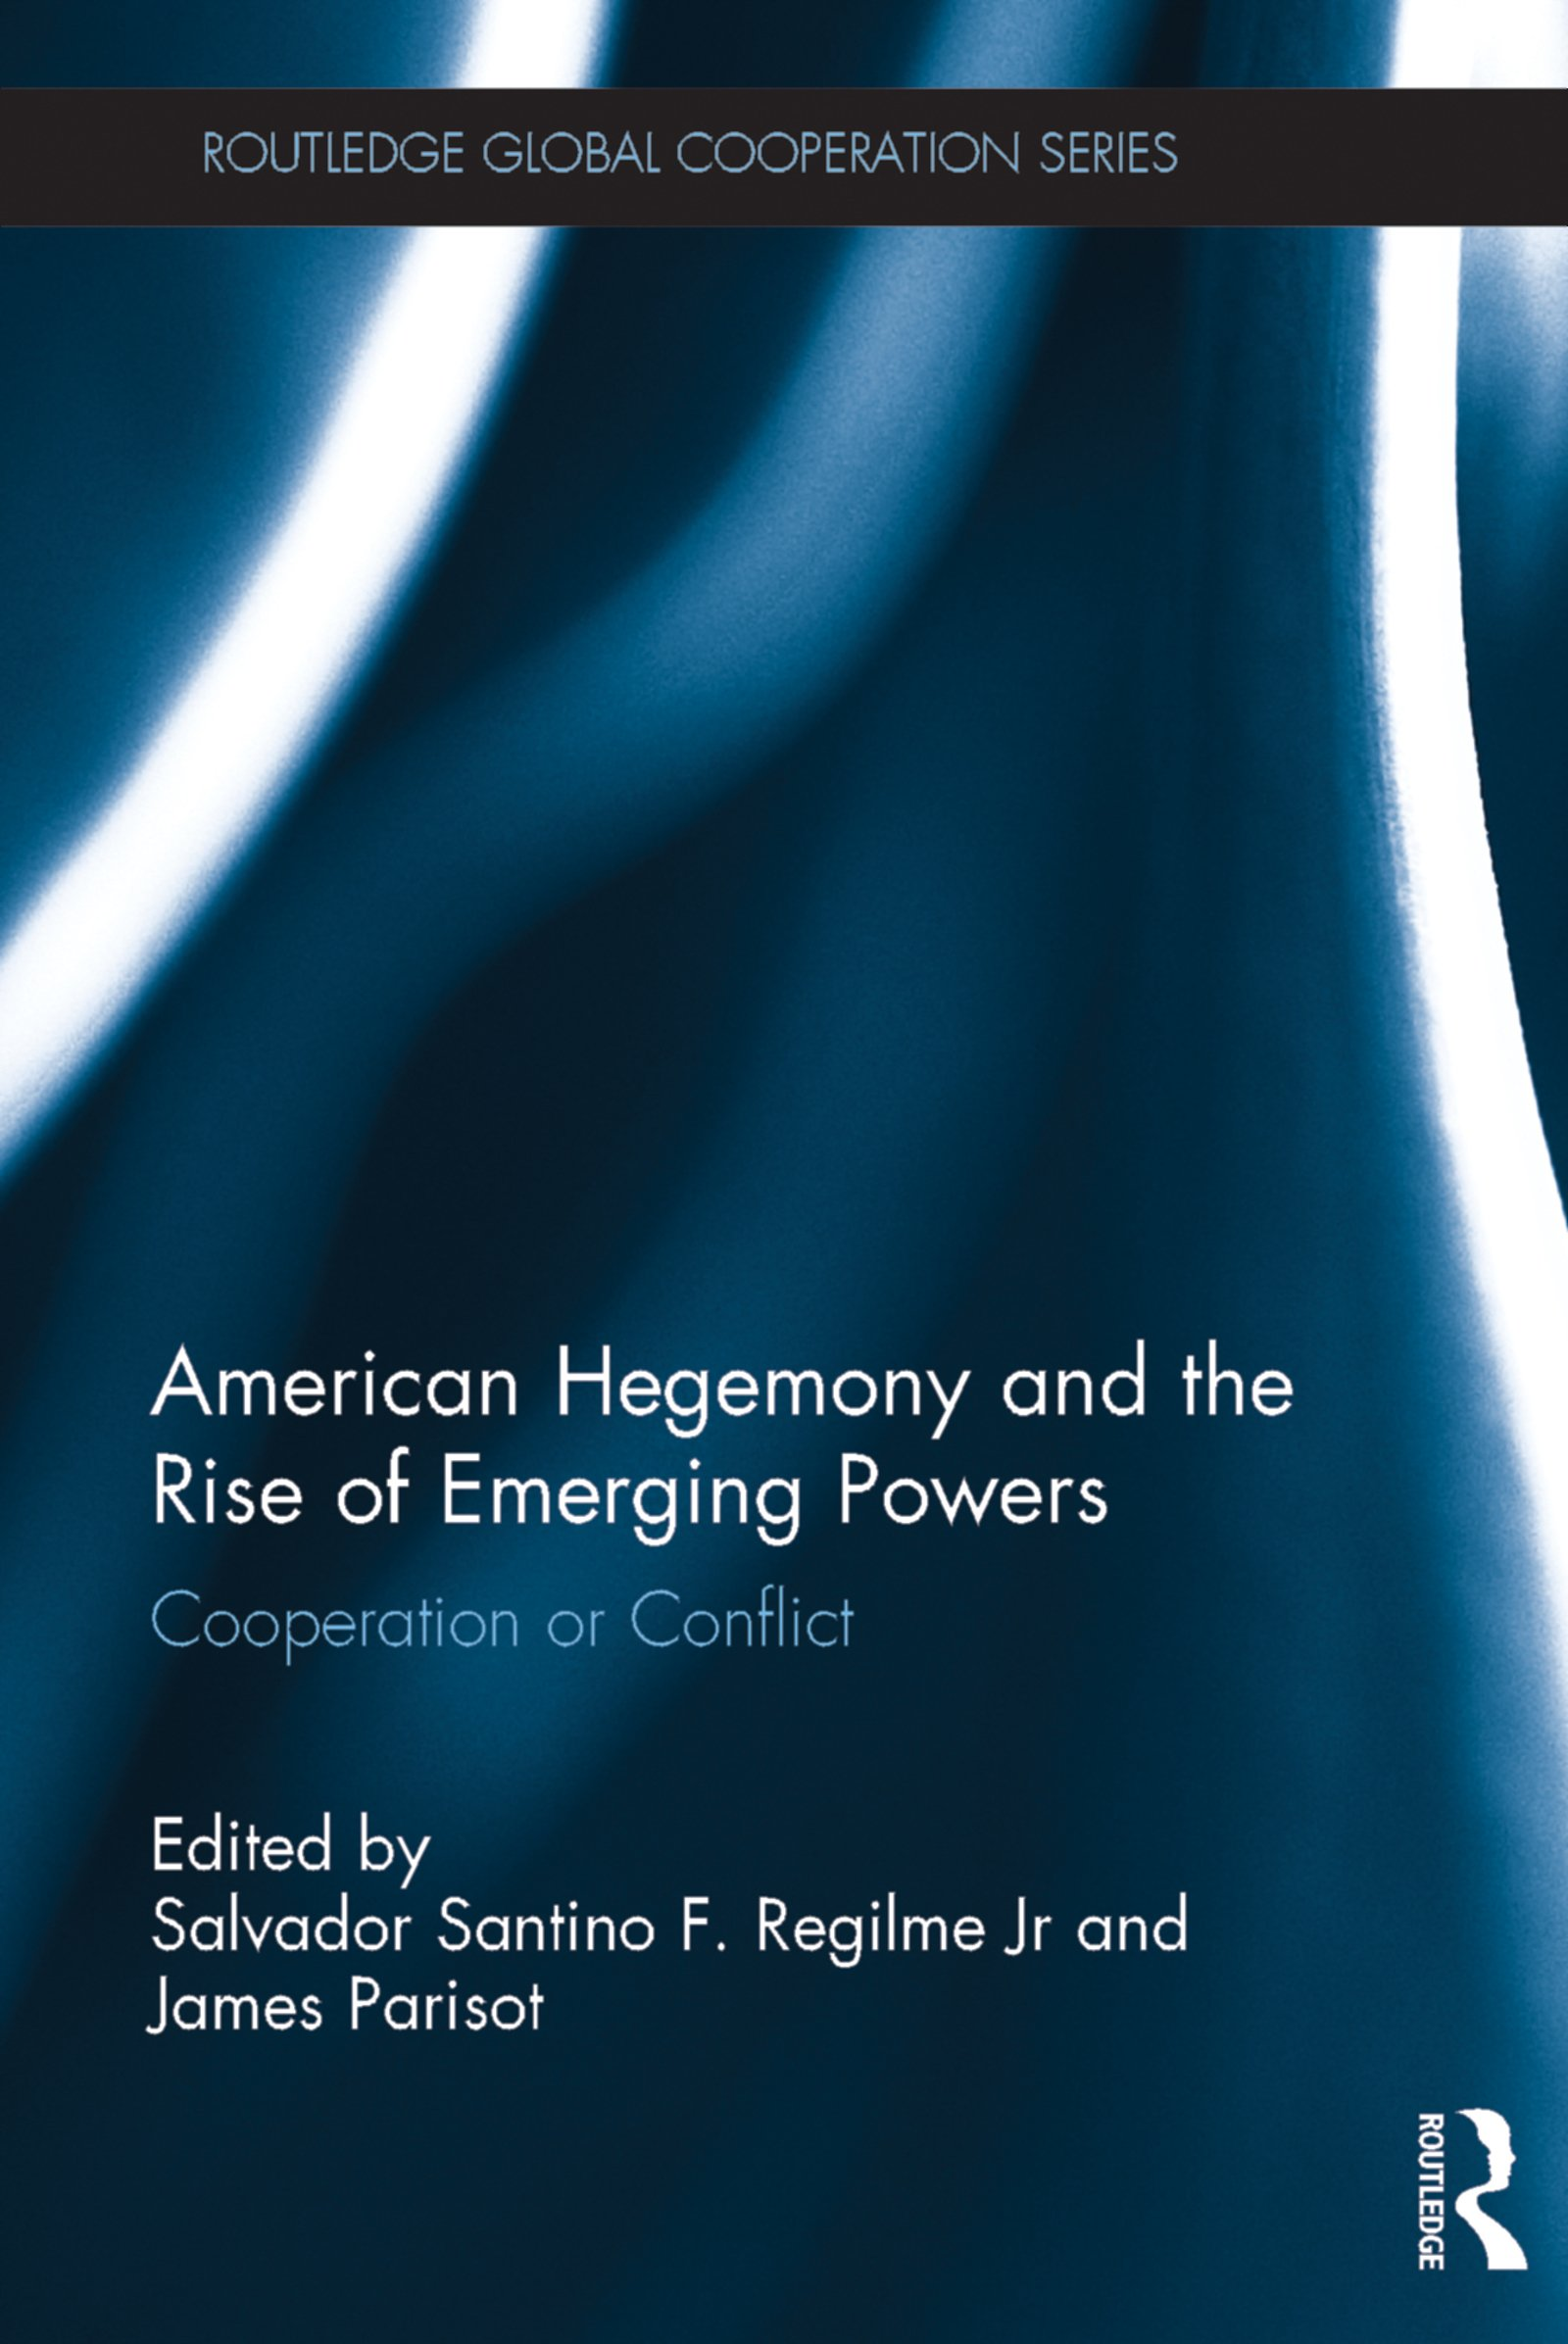 American Hegemony and the Rise of Emerging Powers: Cooperation or Conflict (Routledge Global Cooperation Series)